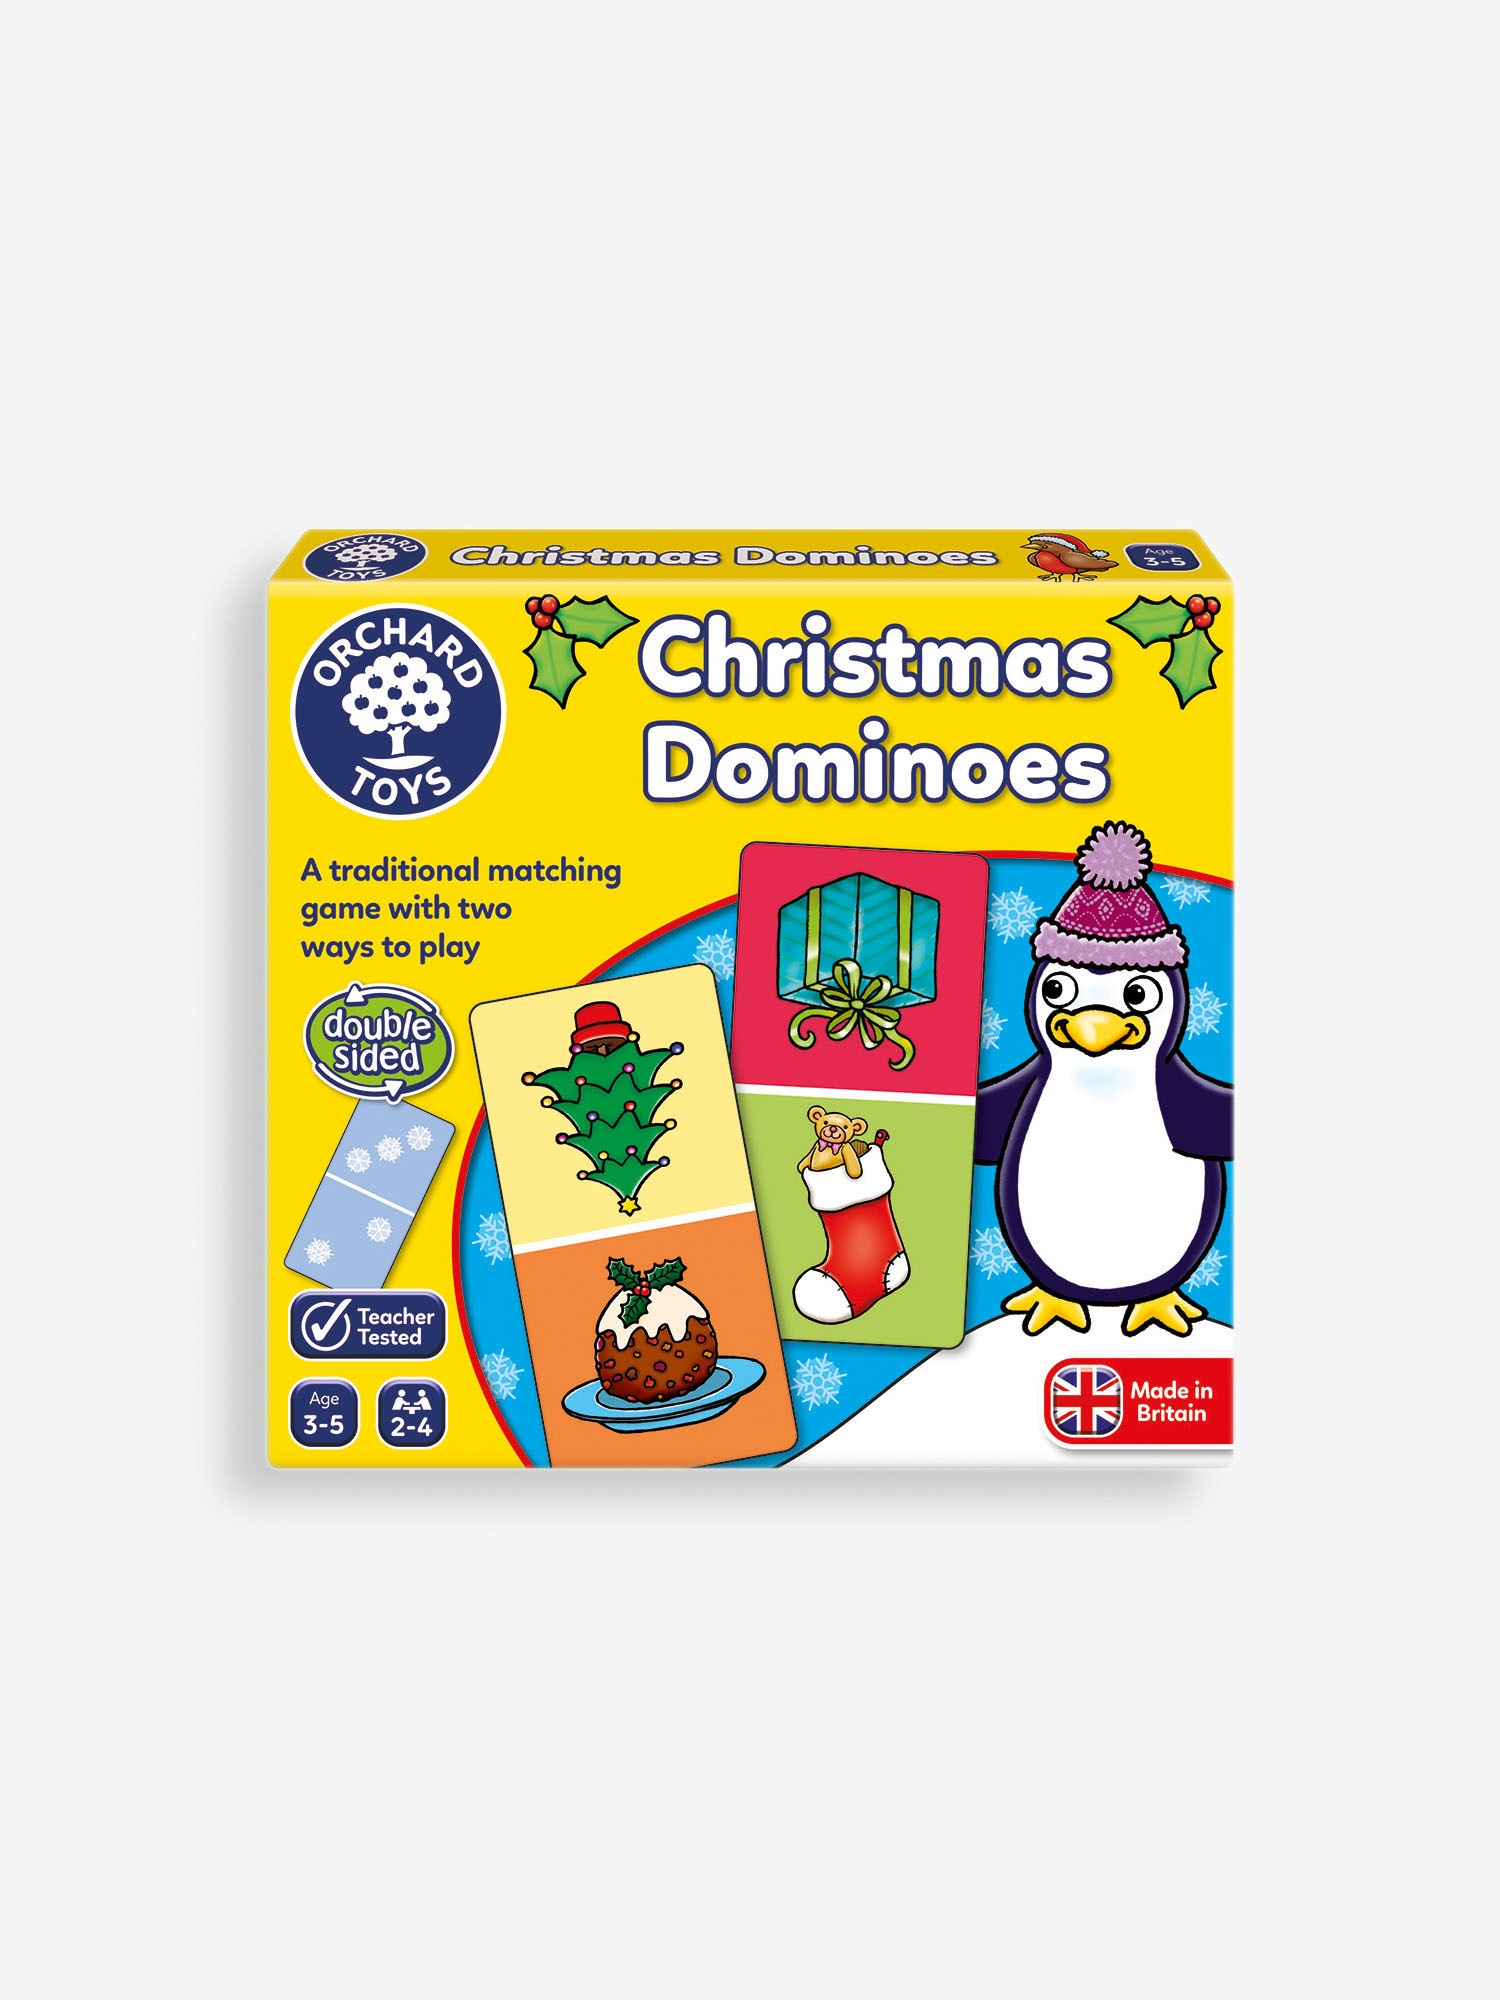 Orchard Toys Christmas Dominoes